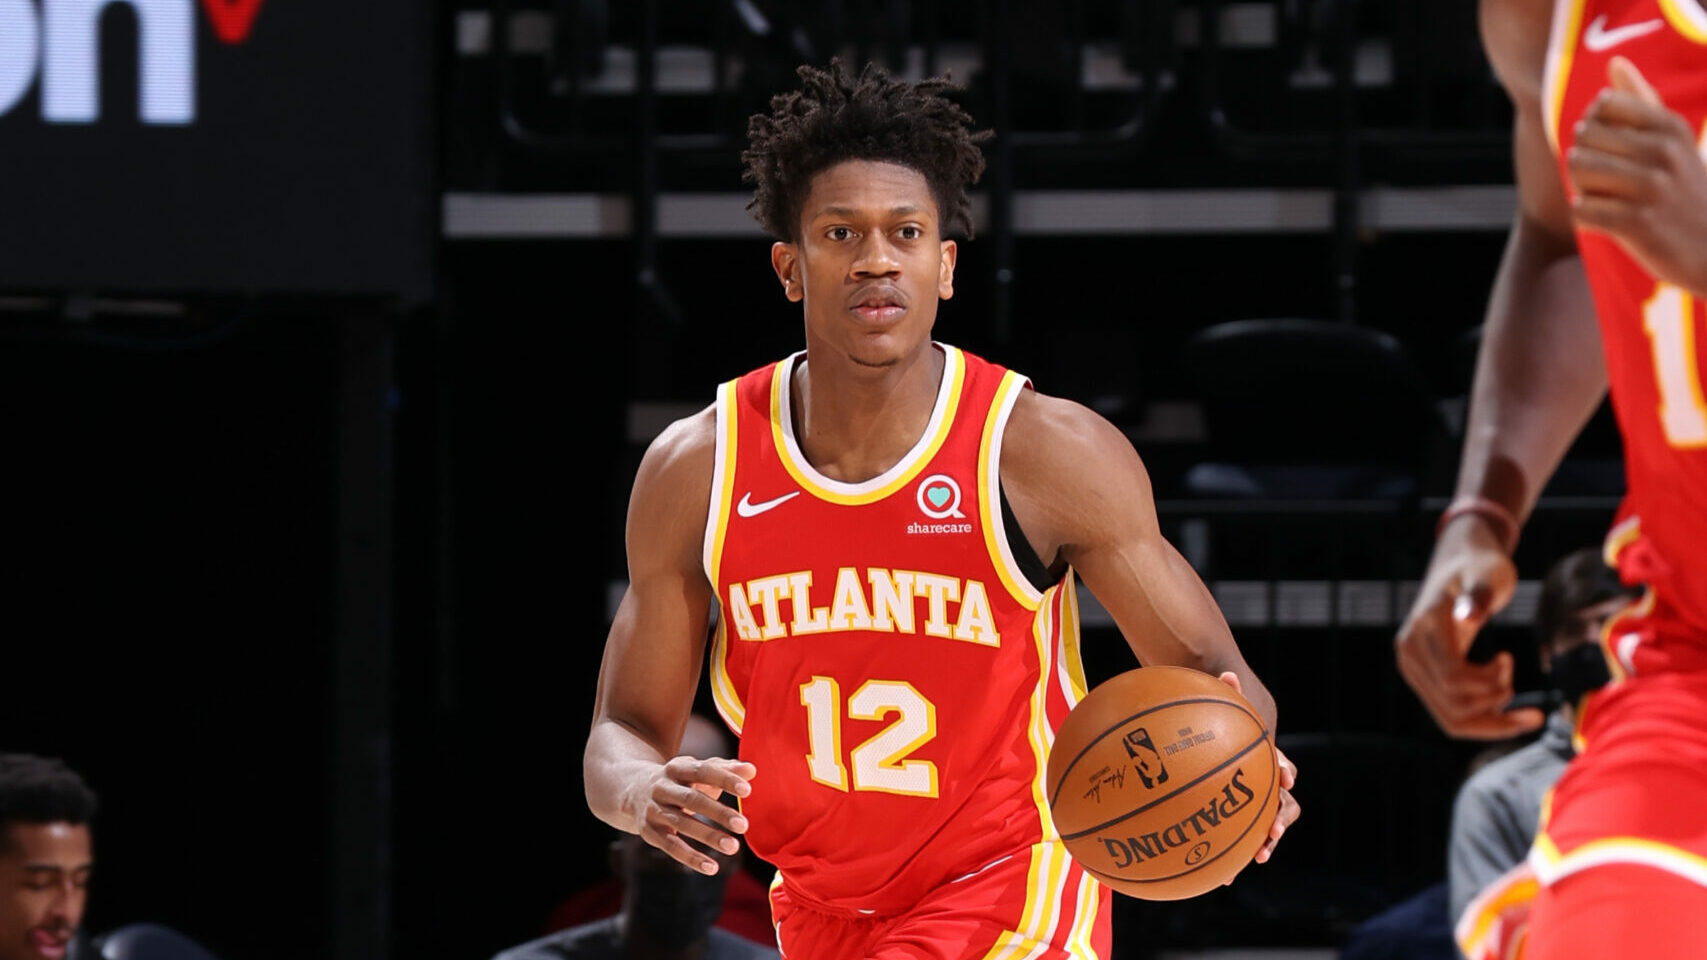 DeAndre Hunter's knee surgery gives Hawks yet another medical hurdle